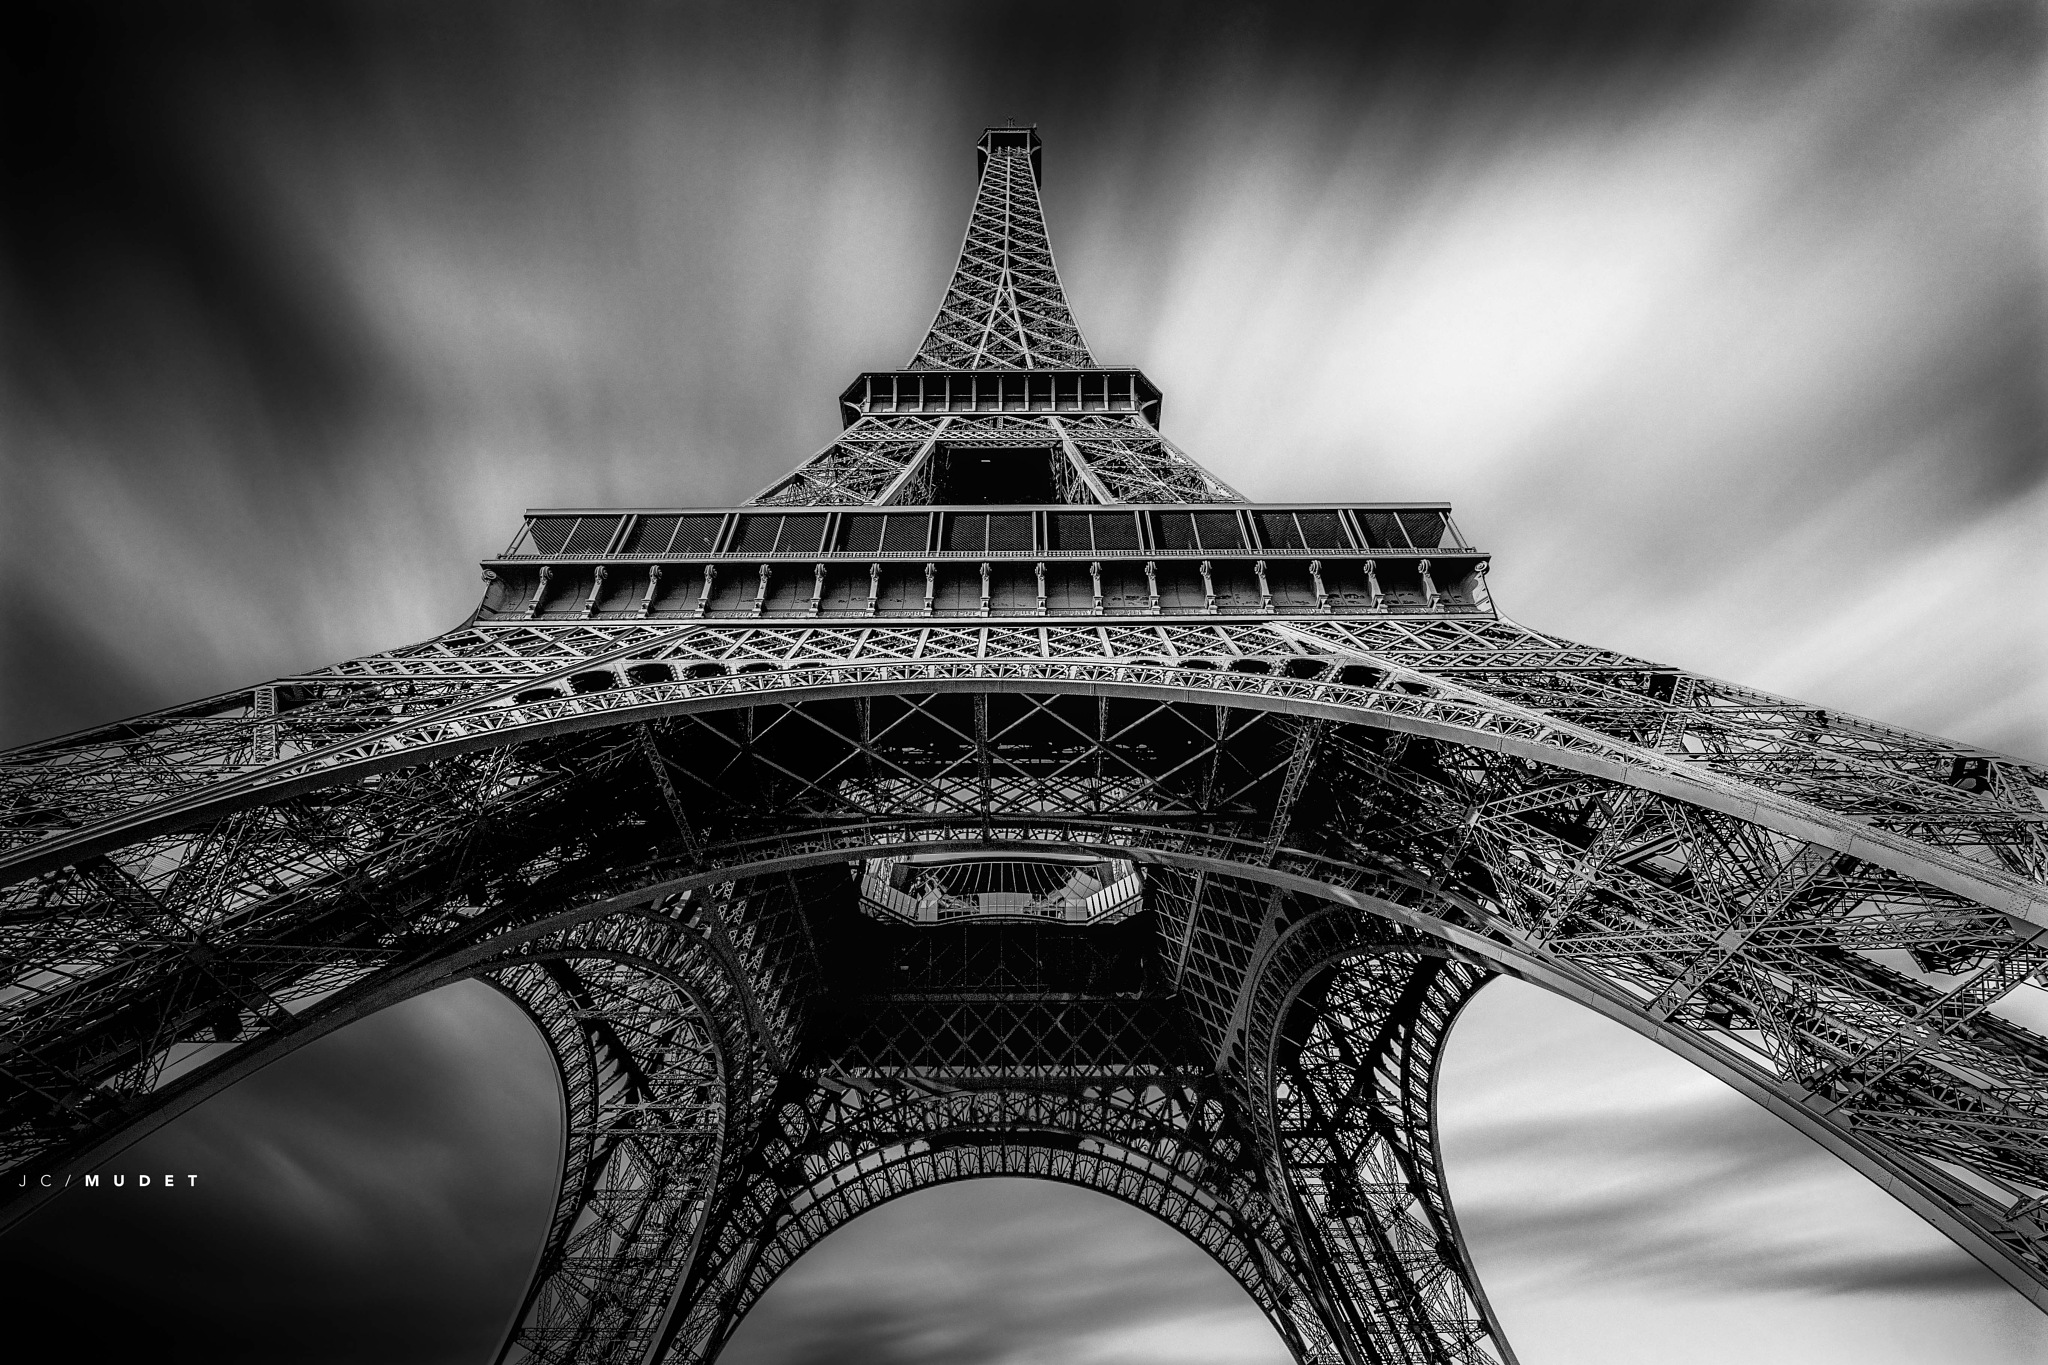 The tower by Jean-Charles Mudet